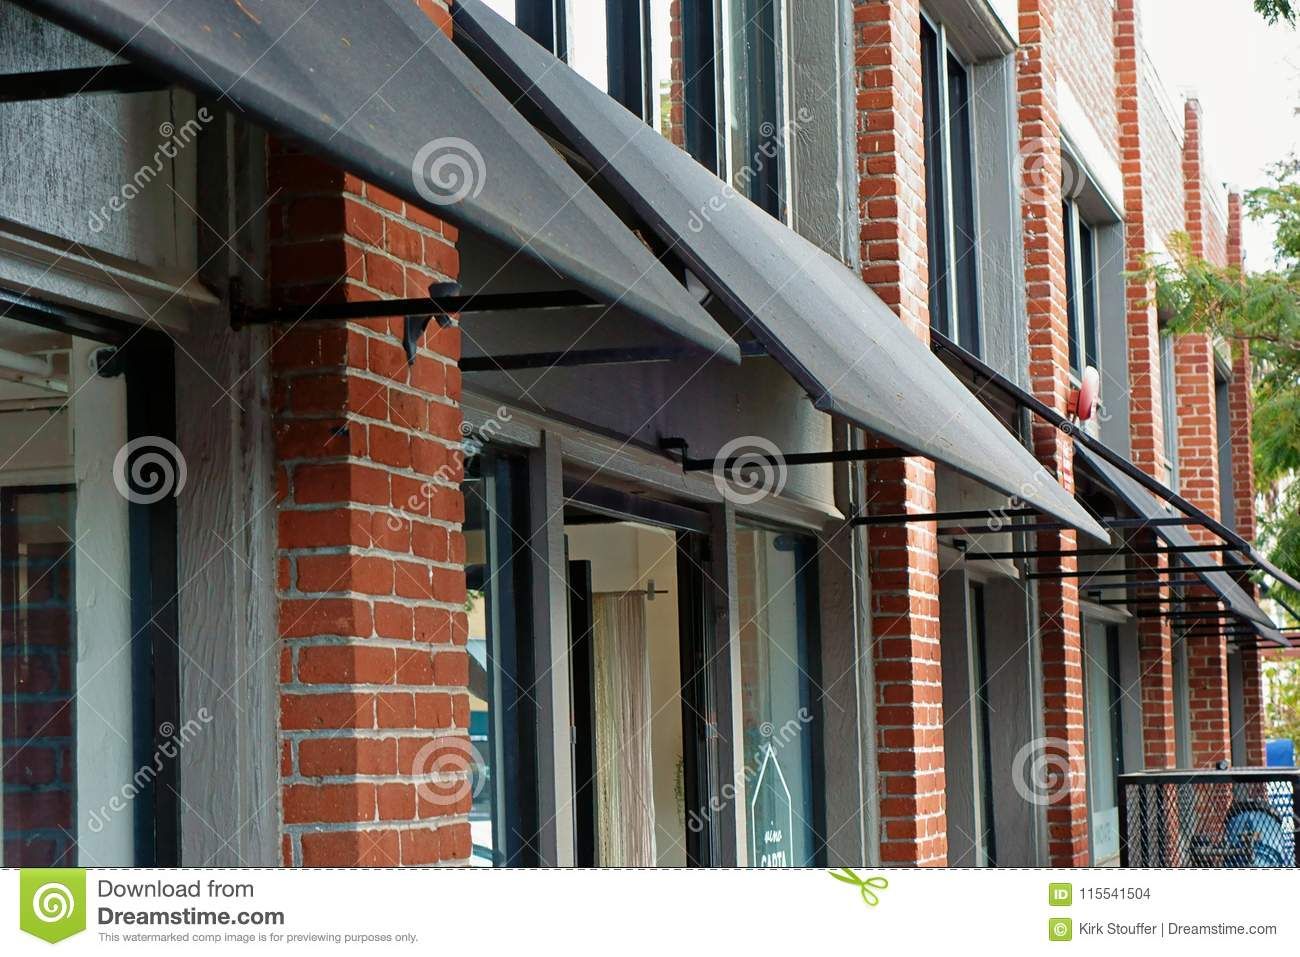 Black Canvas Awnings Projecting Out From A Brick Wall